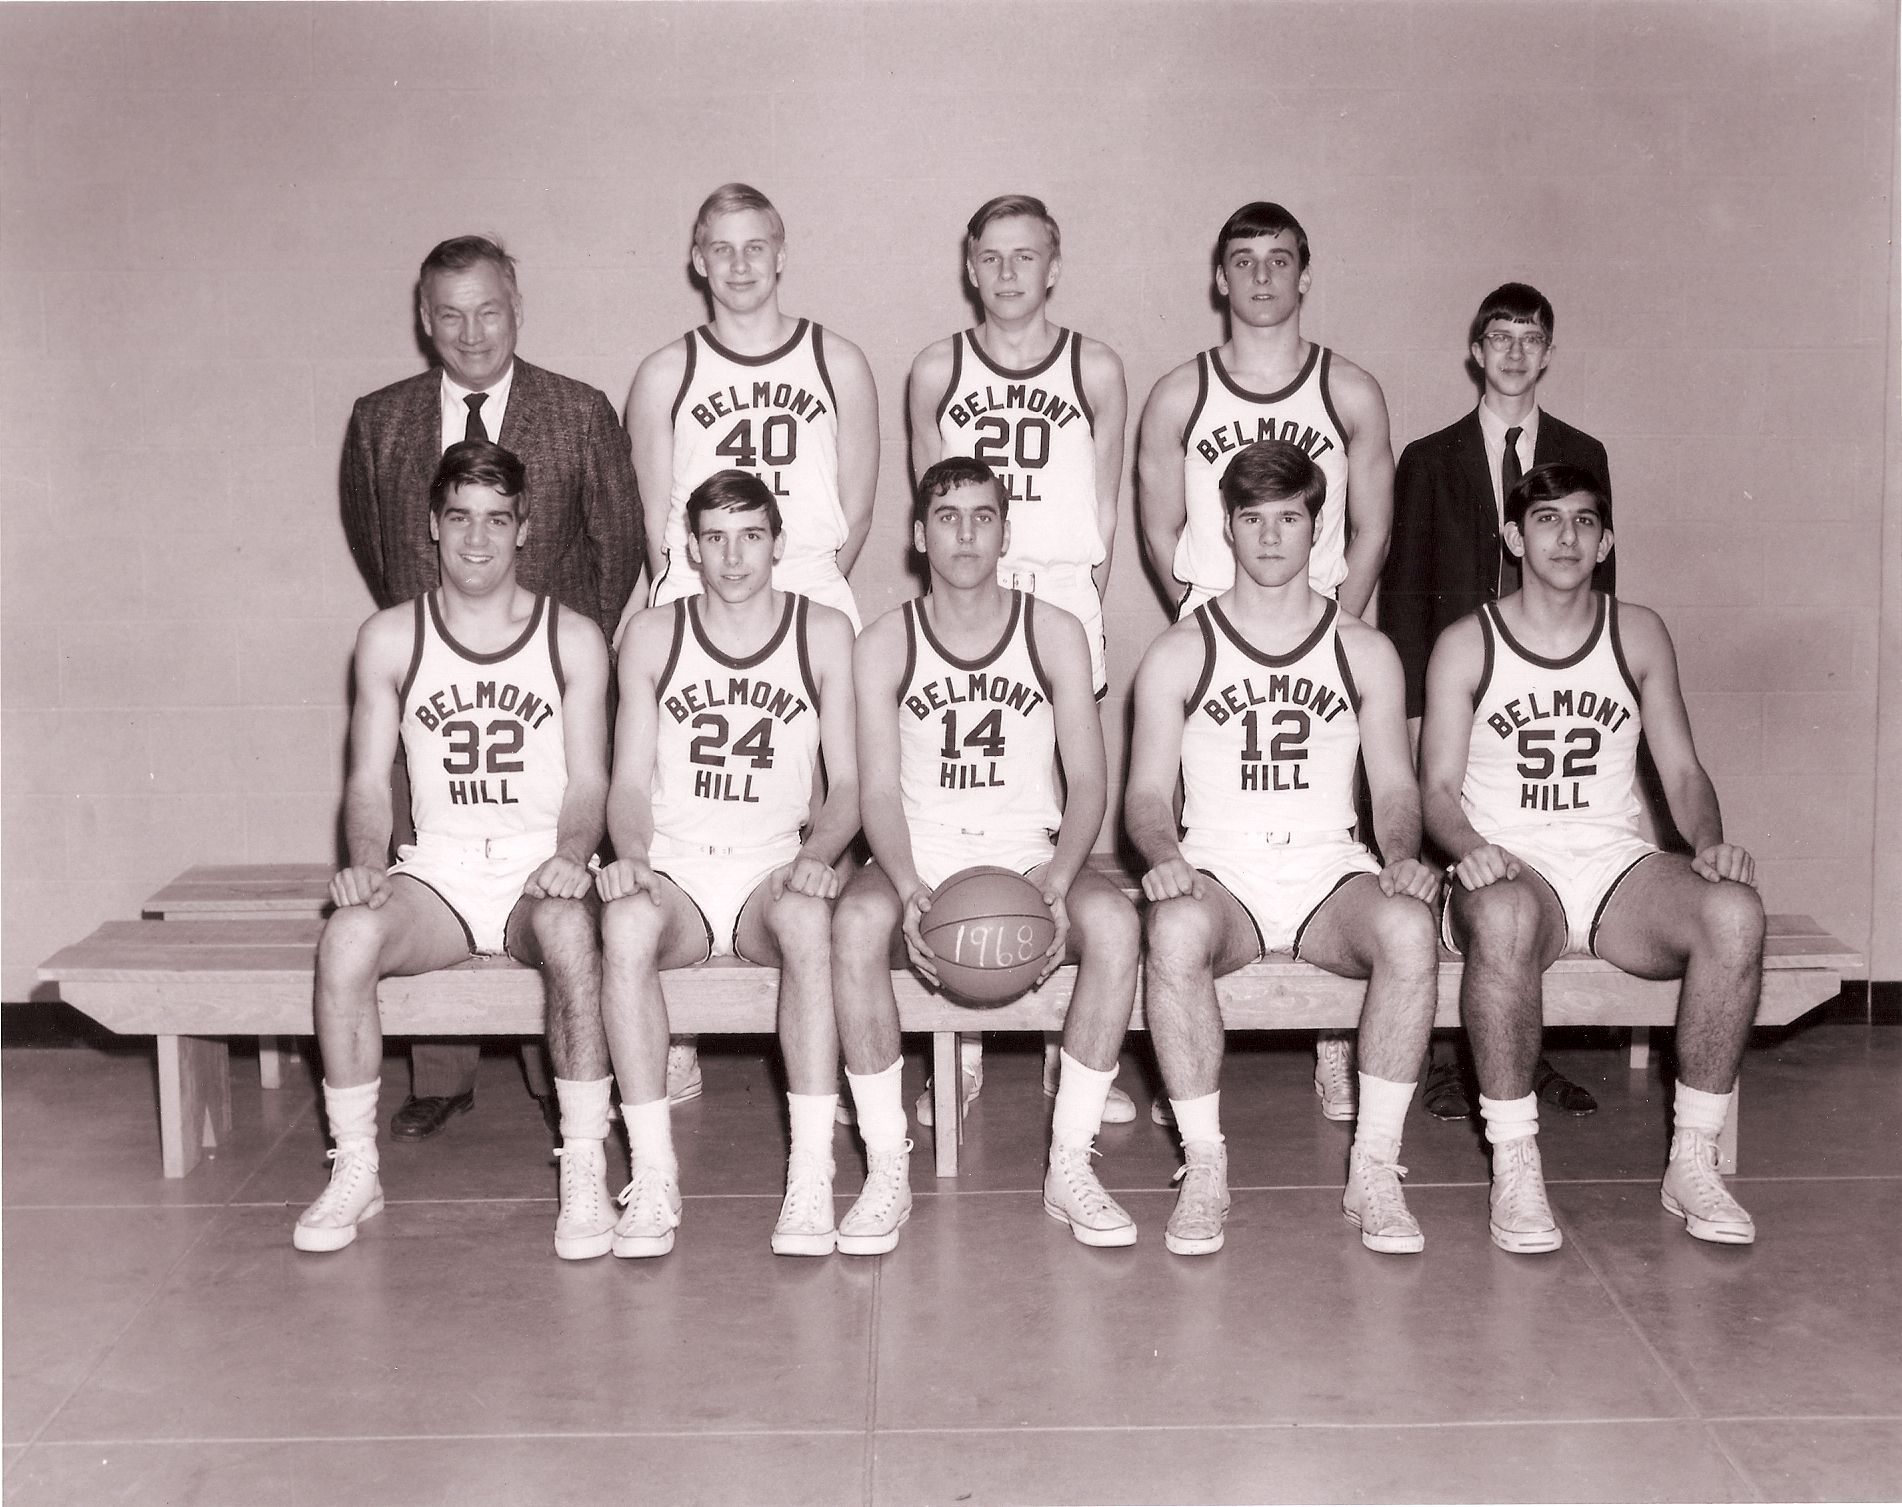 First Row: Siegfried, Forte, Wyner, Buchanan, Chobanian Second Row: Mr. Croke, Bowen, Talbot, Littleton, Henriquez